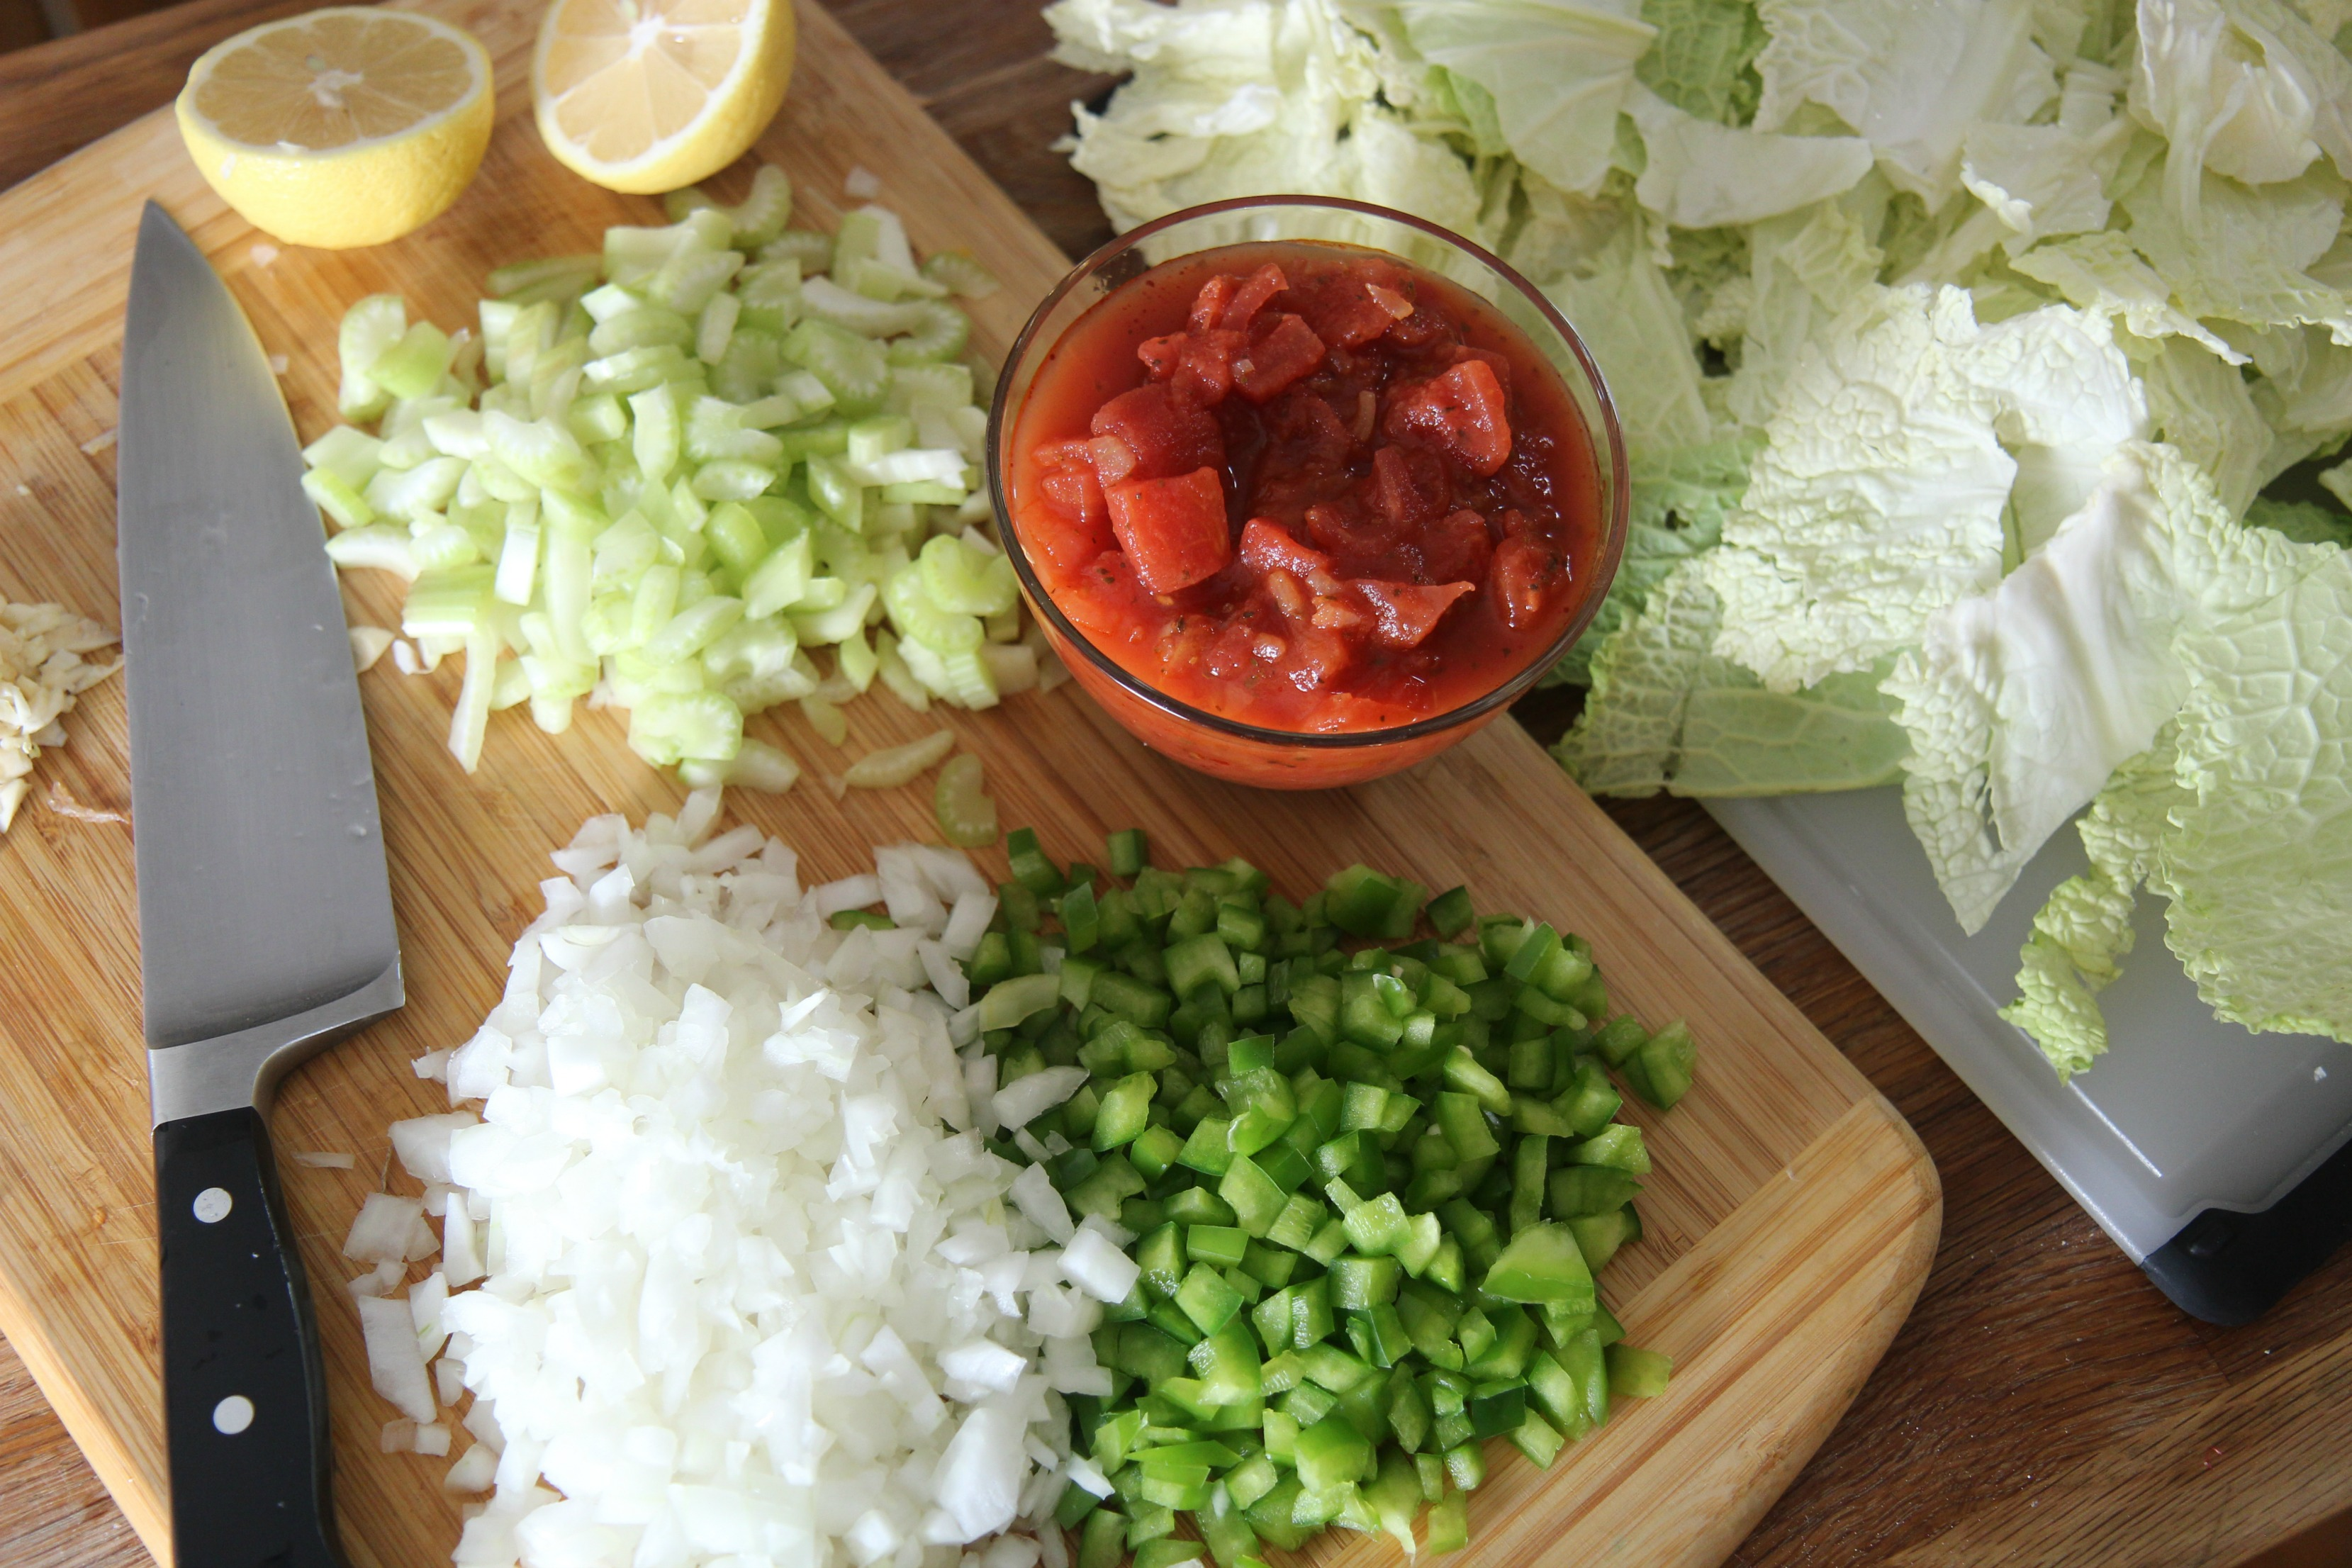 Detox diet cabbage soup recipe ingredients - fresh chopped vegetables and delicious lemon.